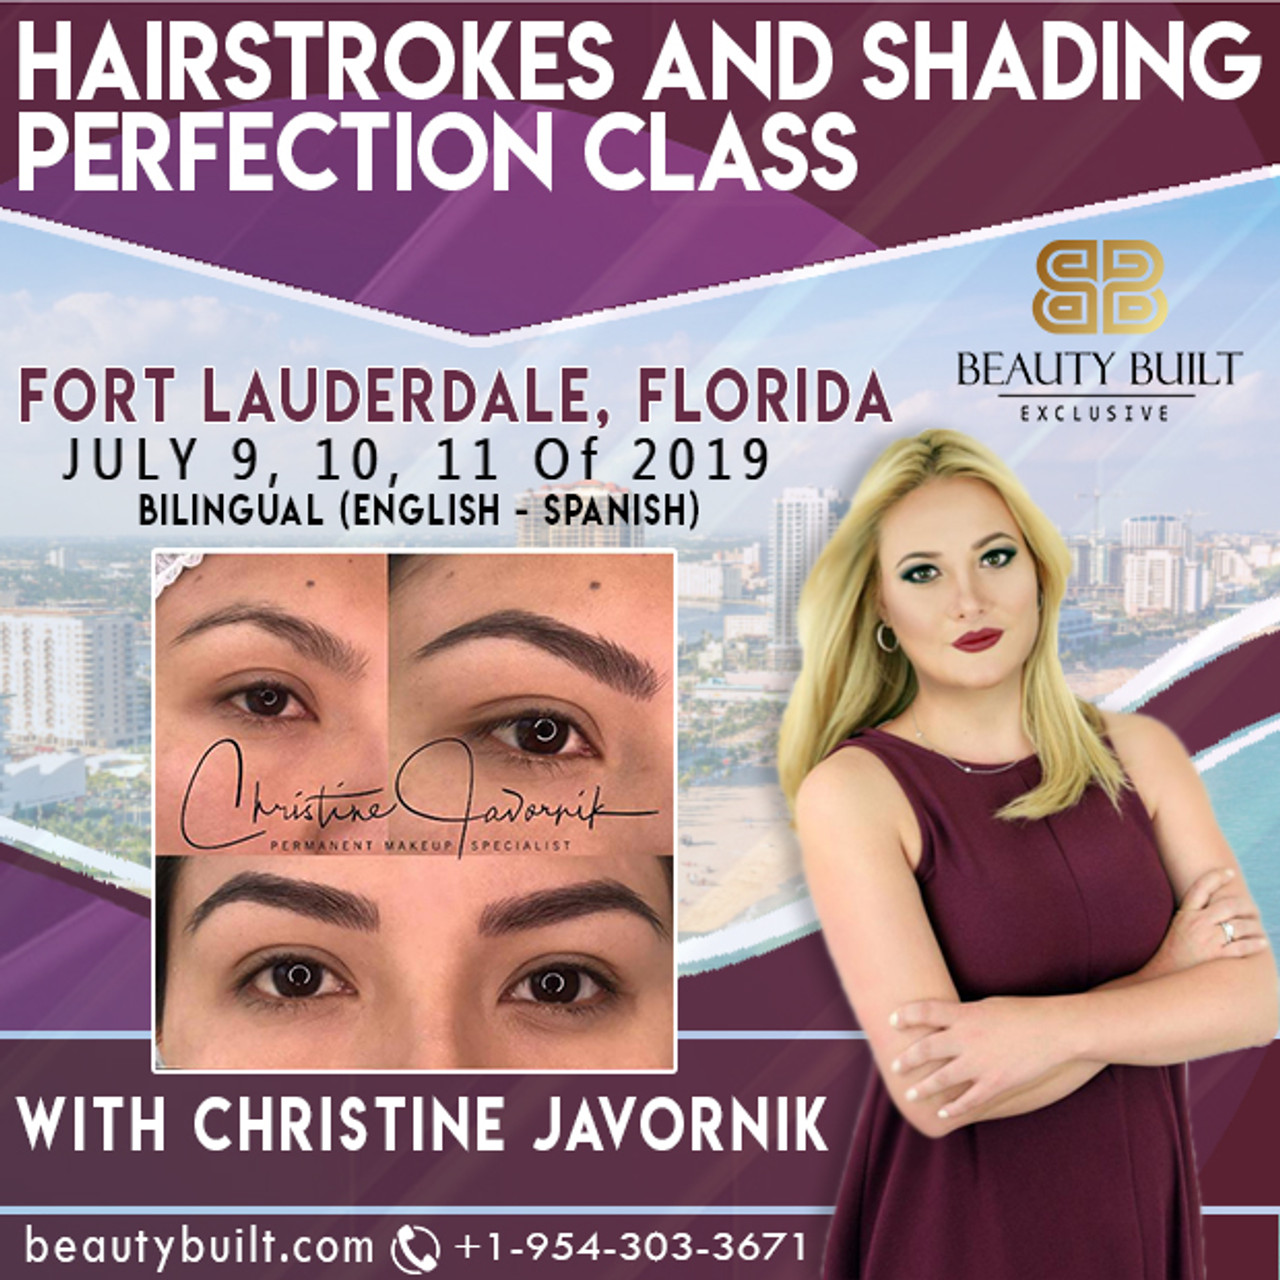 Hairstrokes + Shading Perfection Class - July 9th, 10th & 11th, 2019 with Christine Javornik